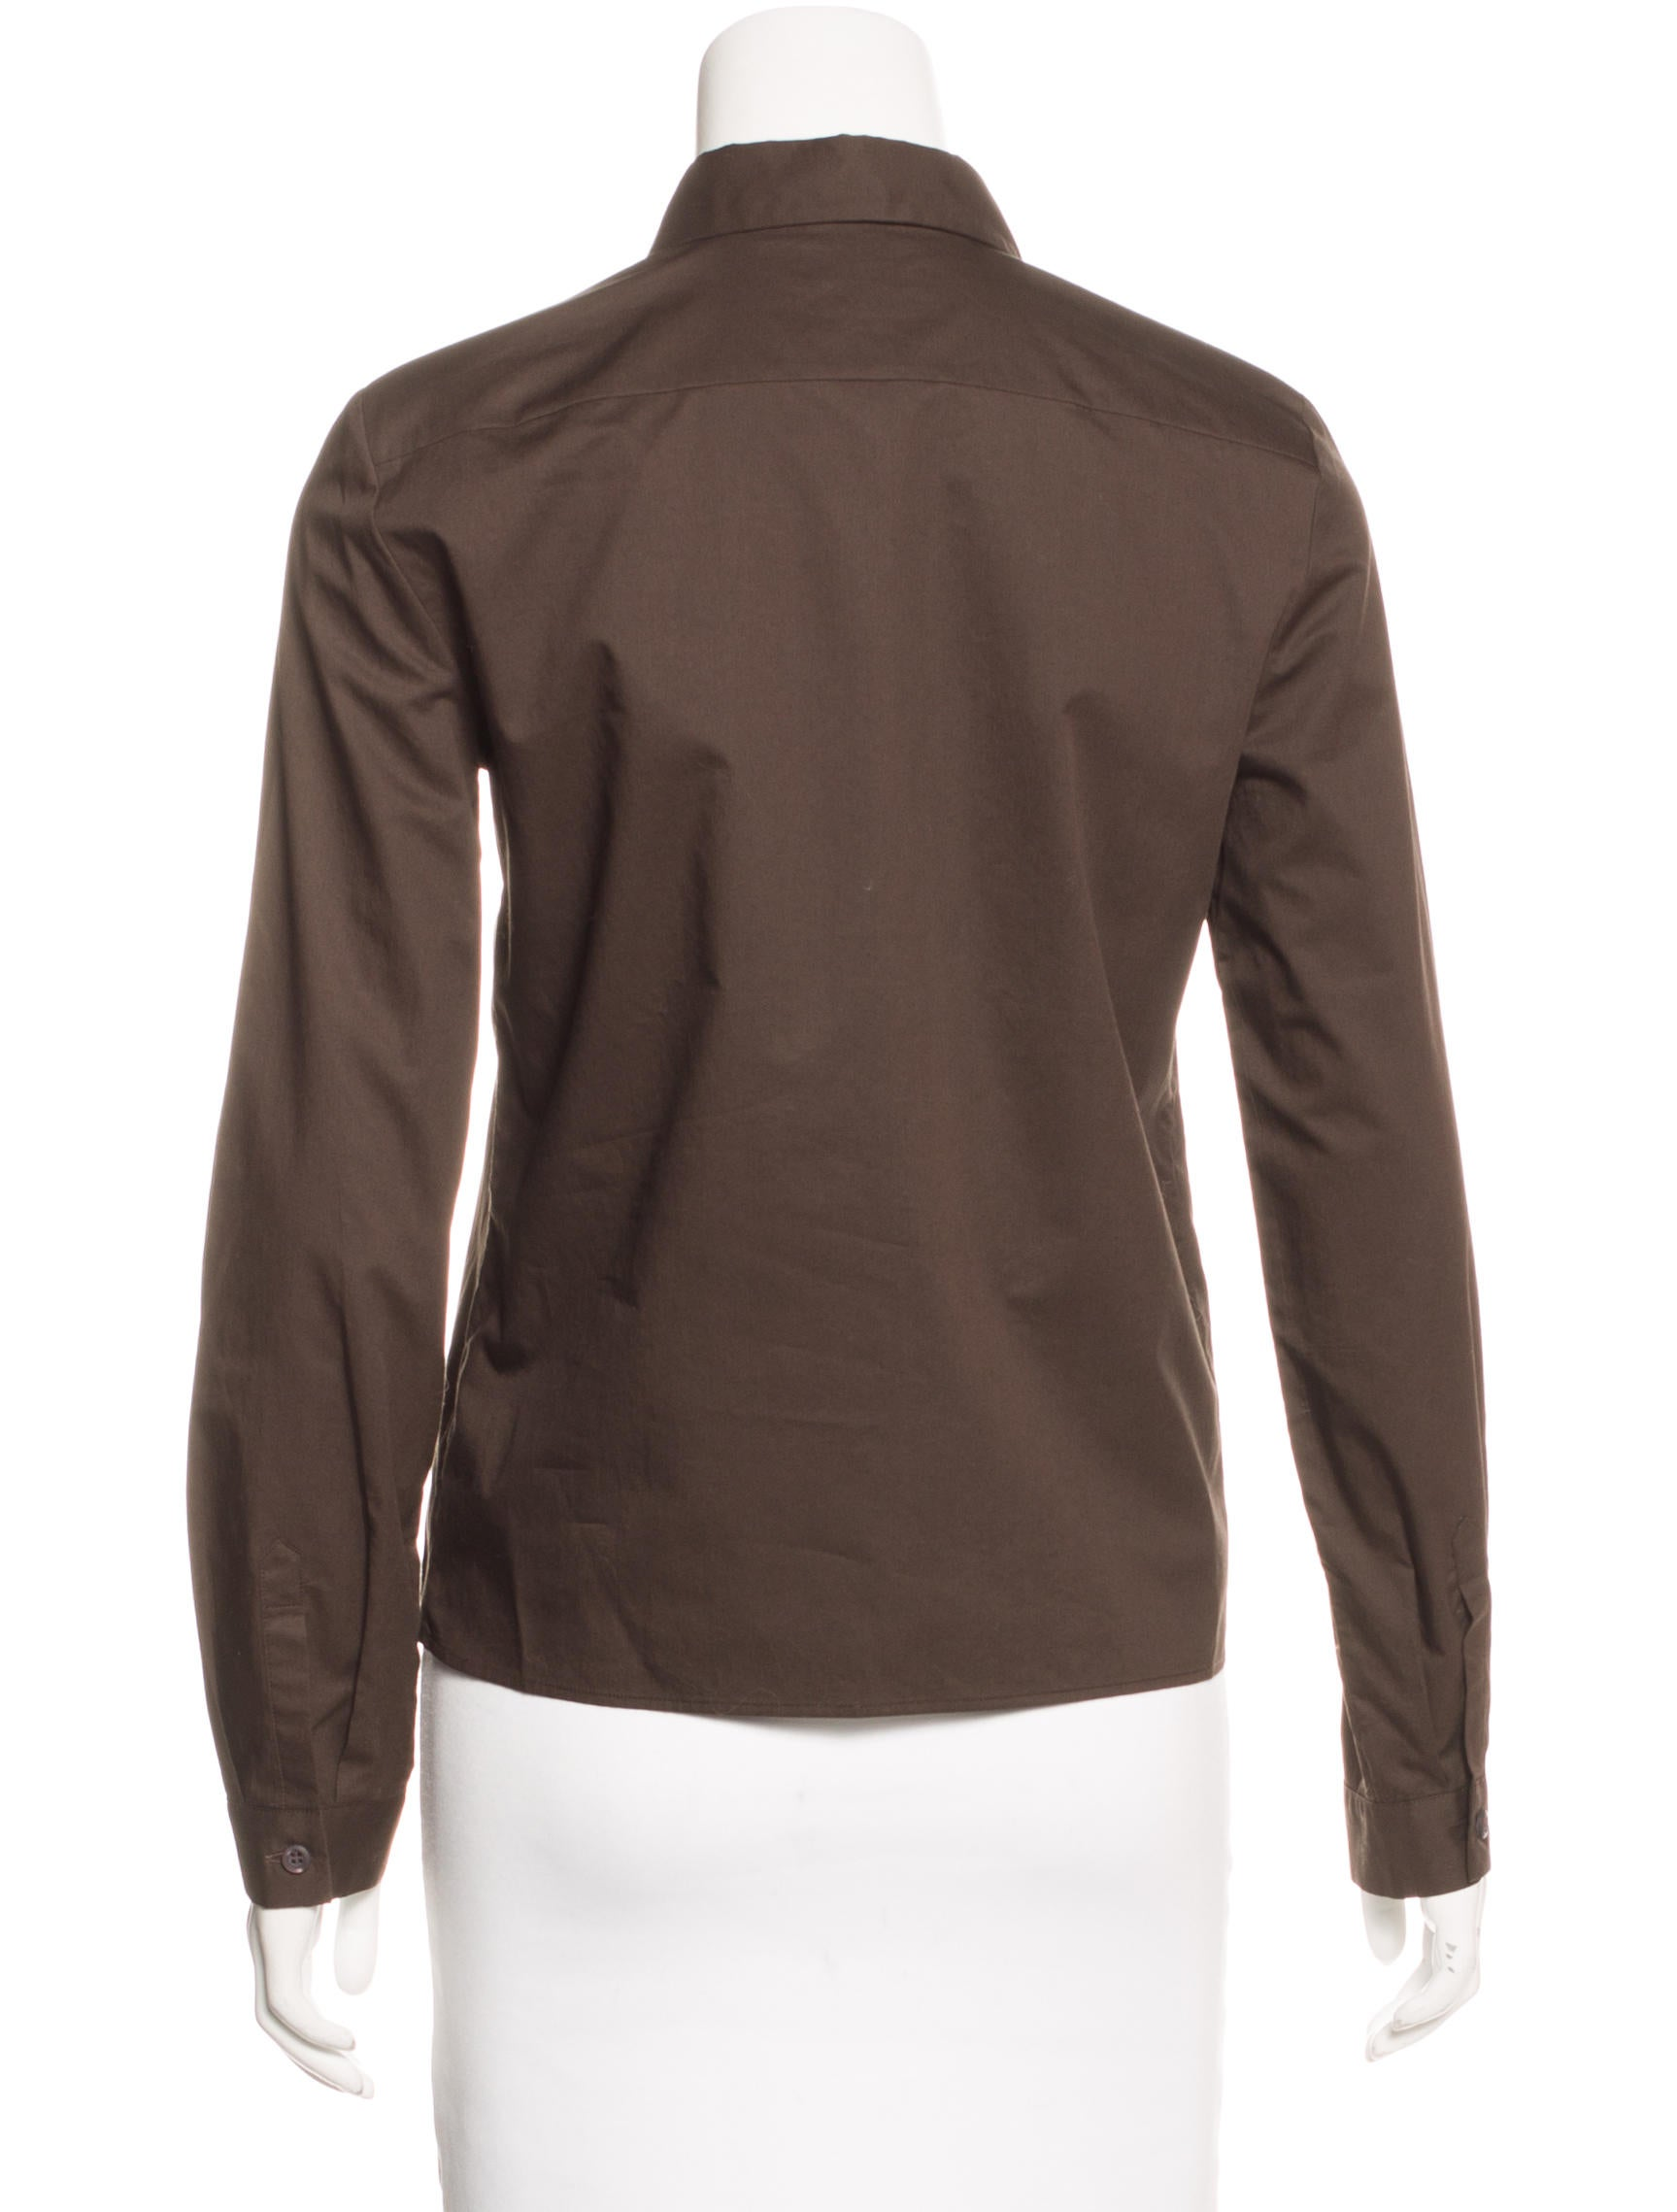 Prada Fitted Button Up Top Clothing Pra143394 The